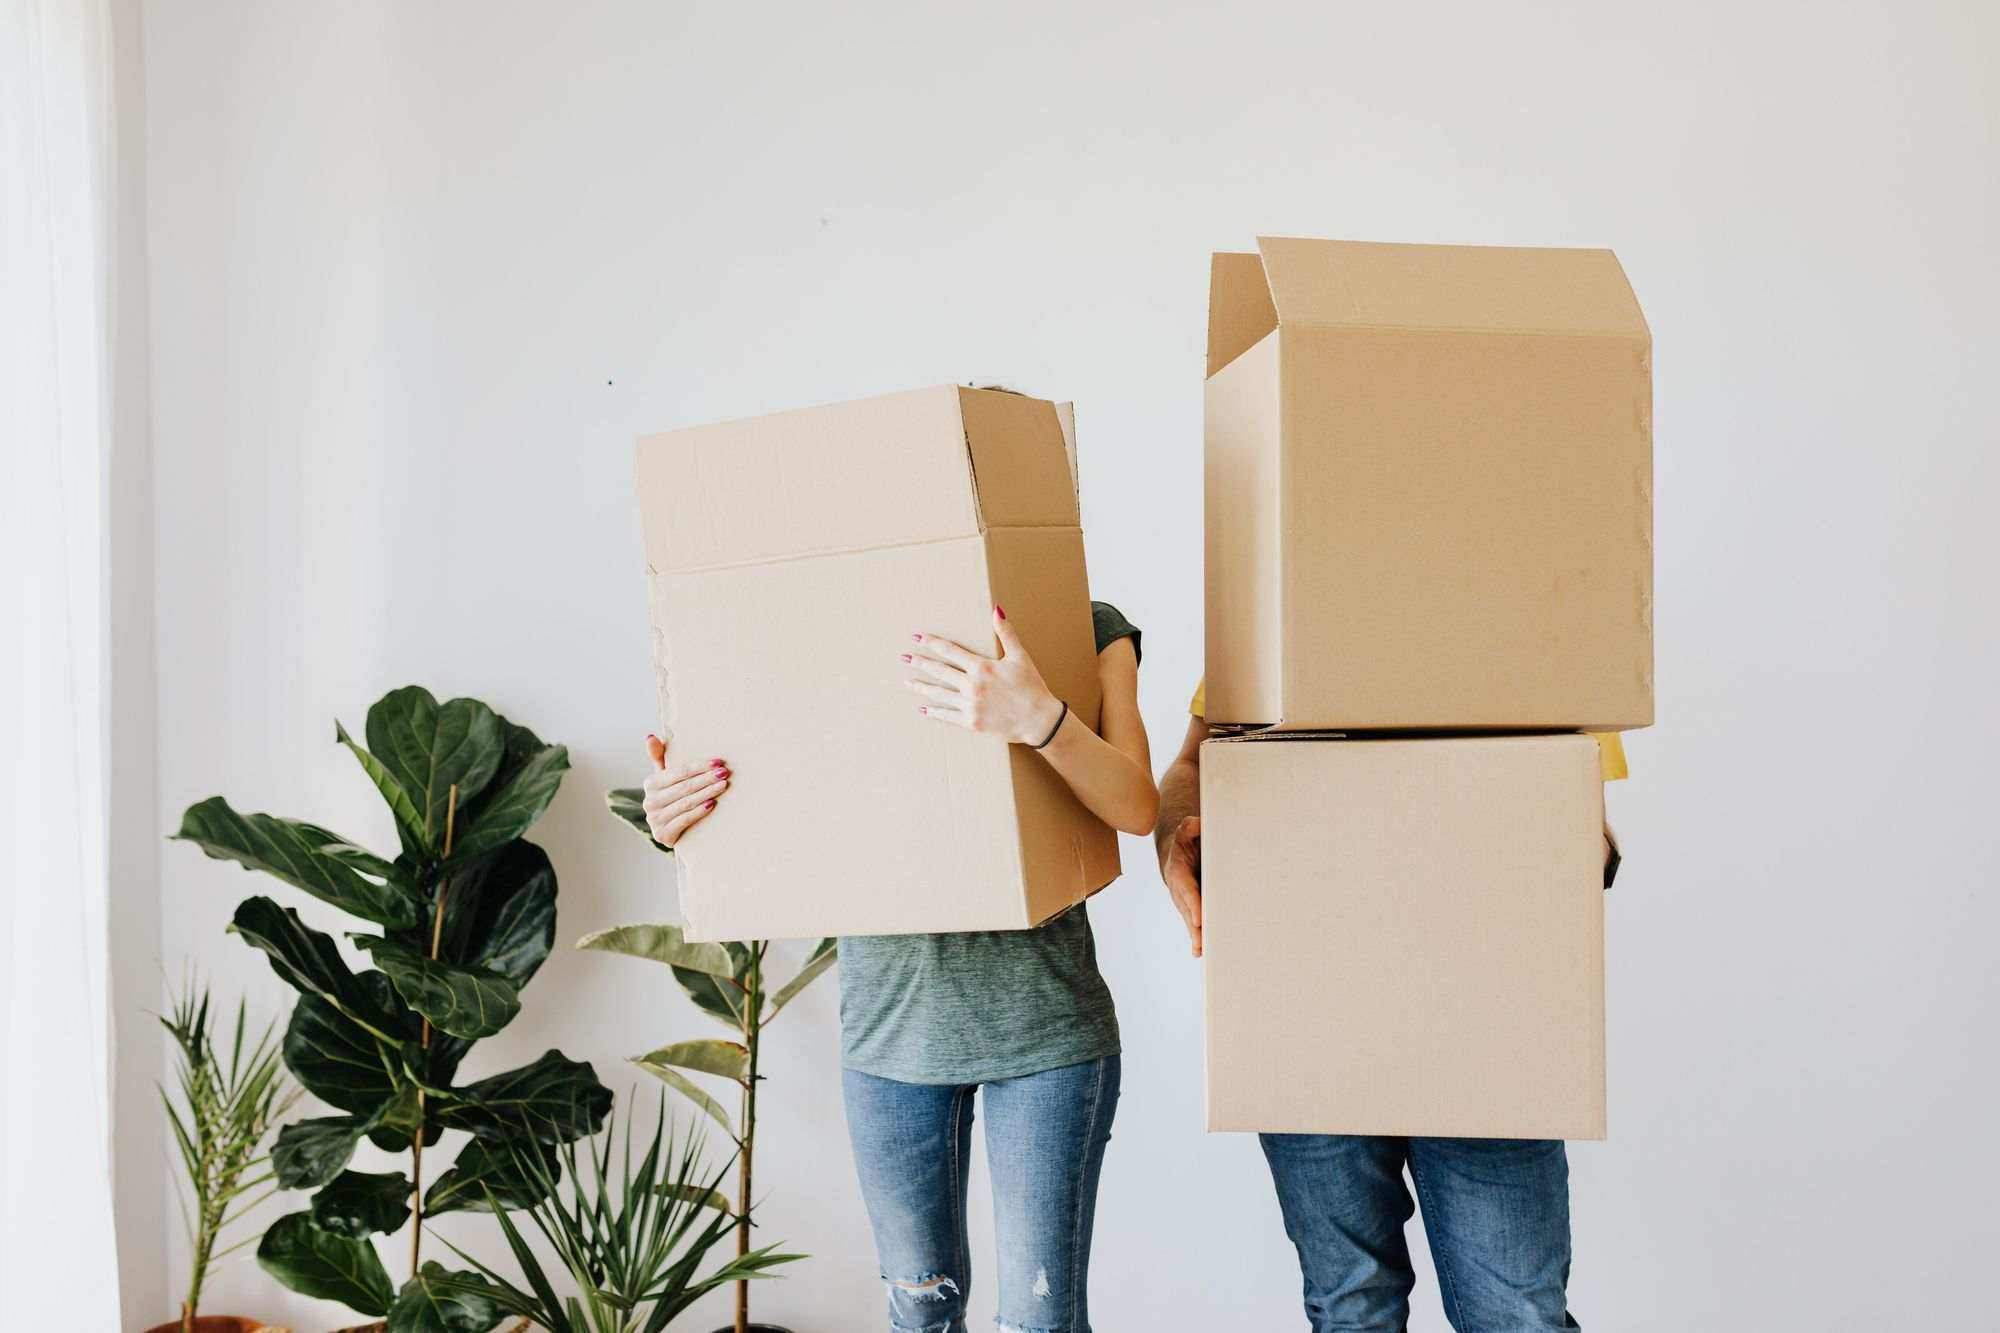 Couple-Moving-Home-Carrying-Removal-Boxes-With-Plant